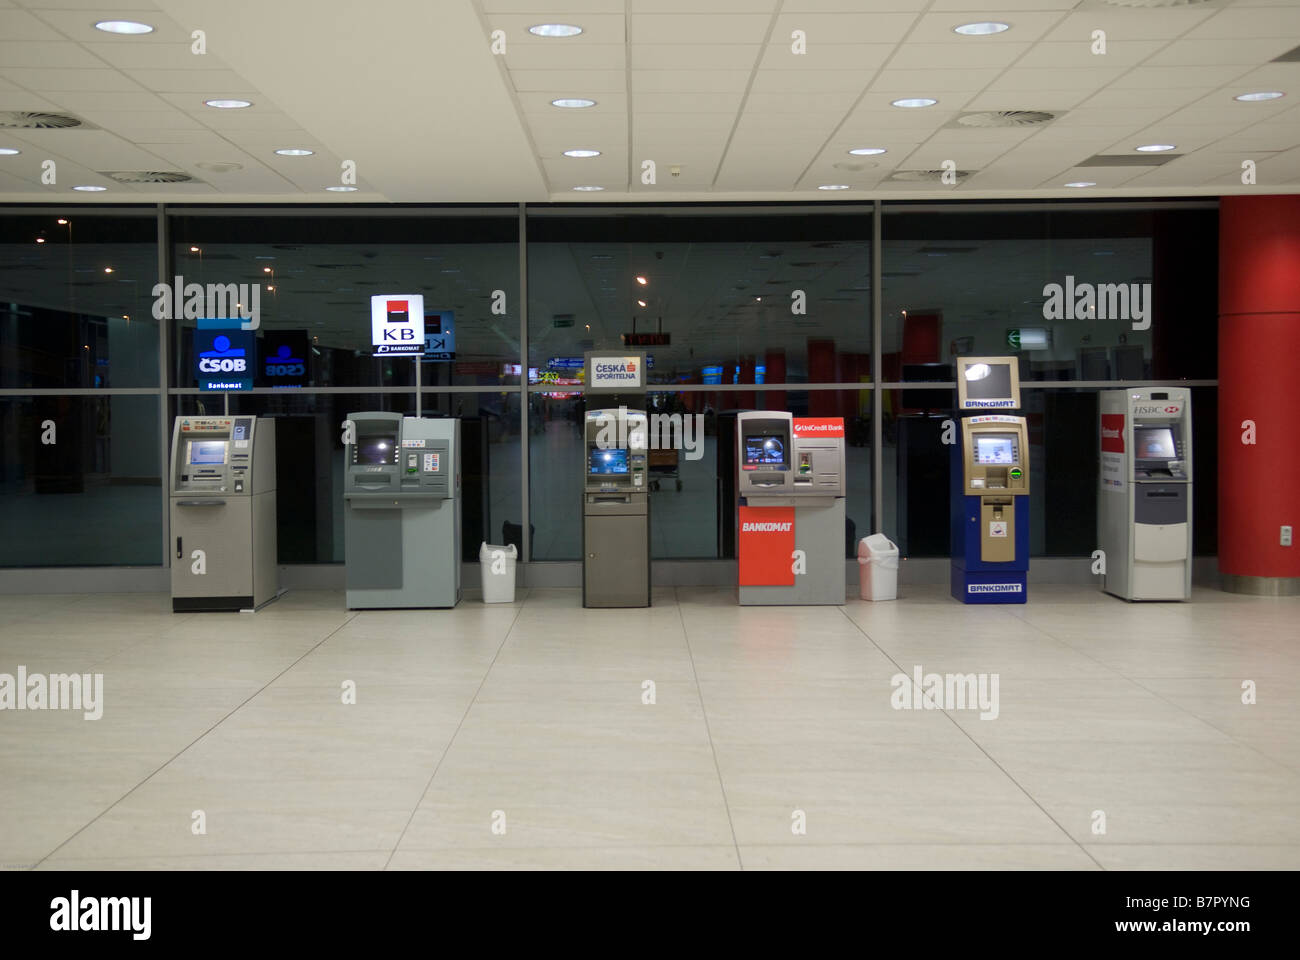 Airport atm stock photos airport atm stock images alamy - Bureau de change paris 7 ...